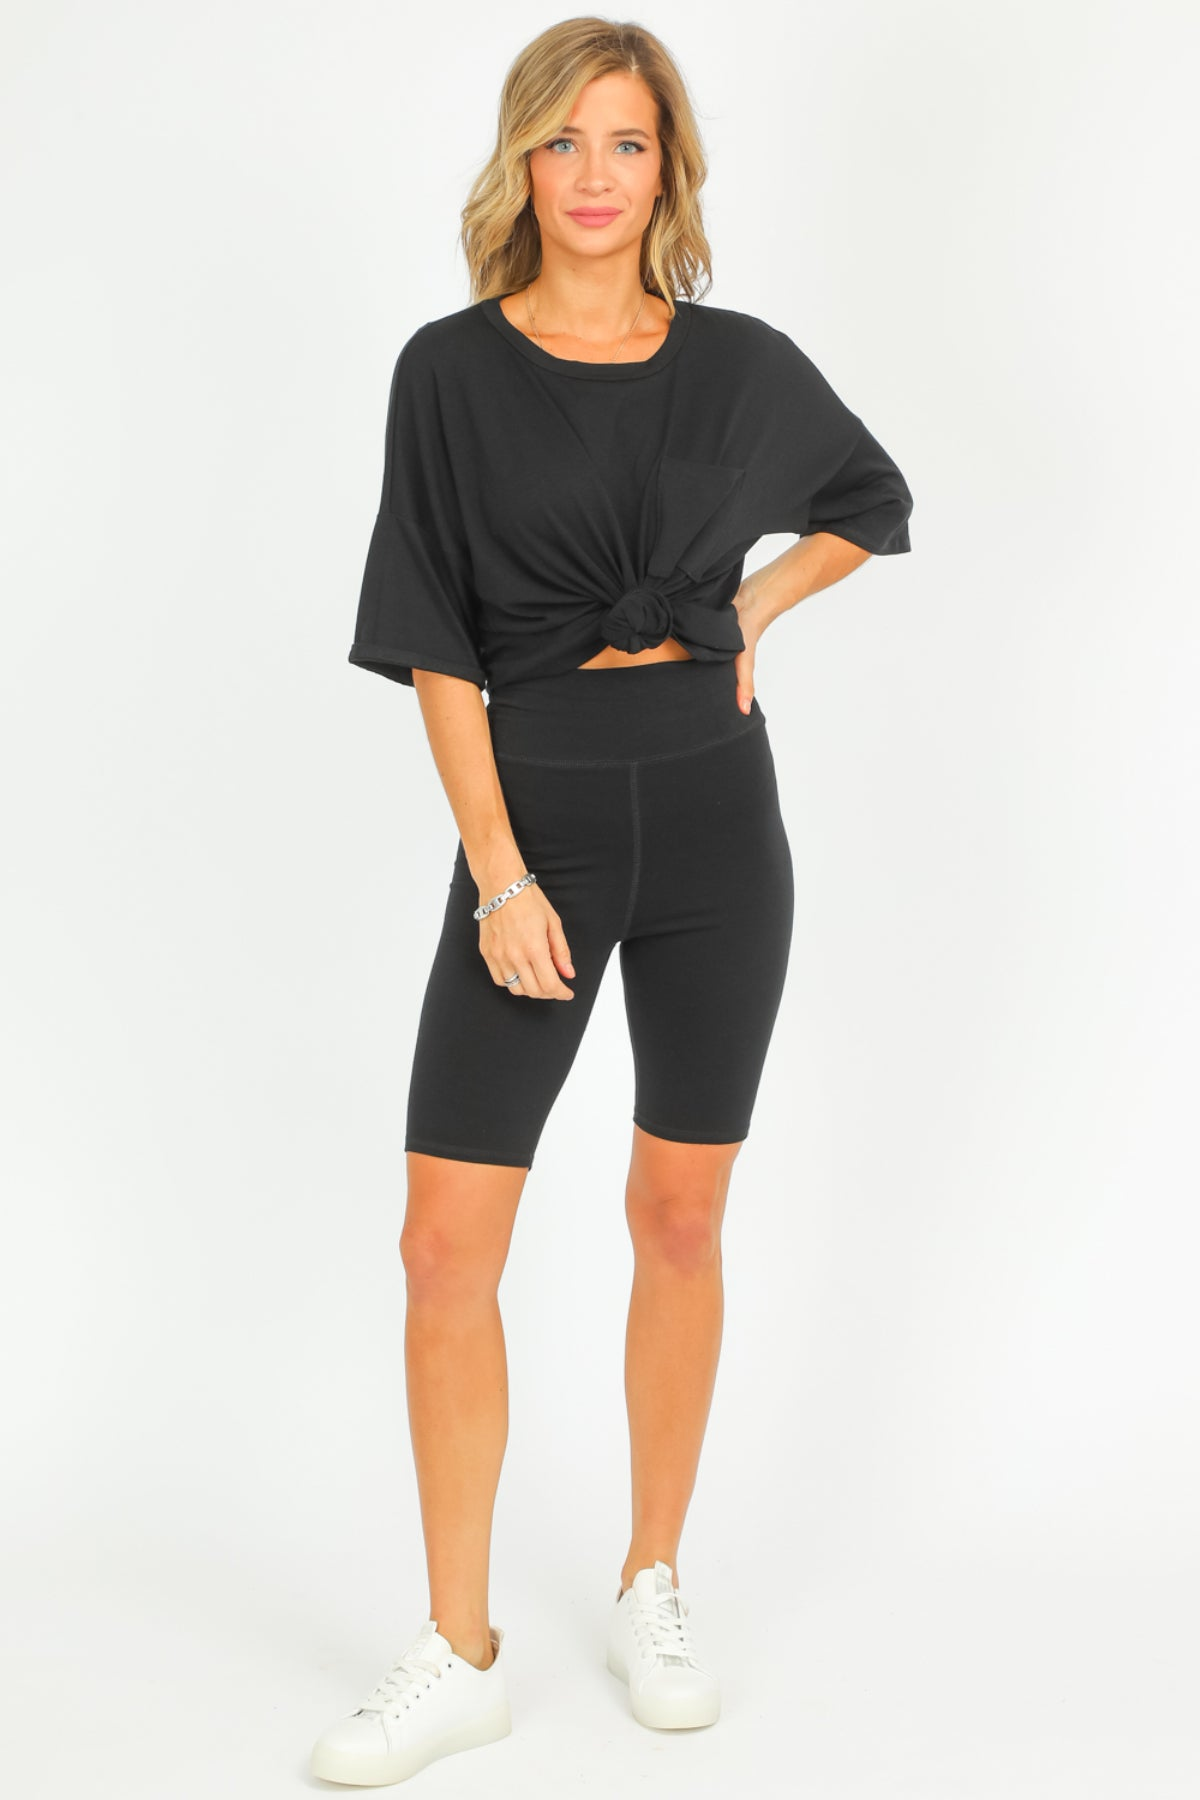 BLACK BIKER SHORTS SET